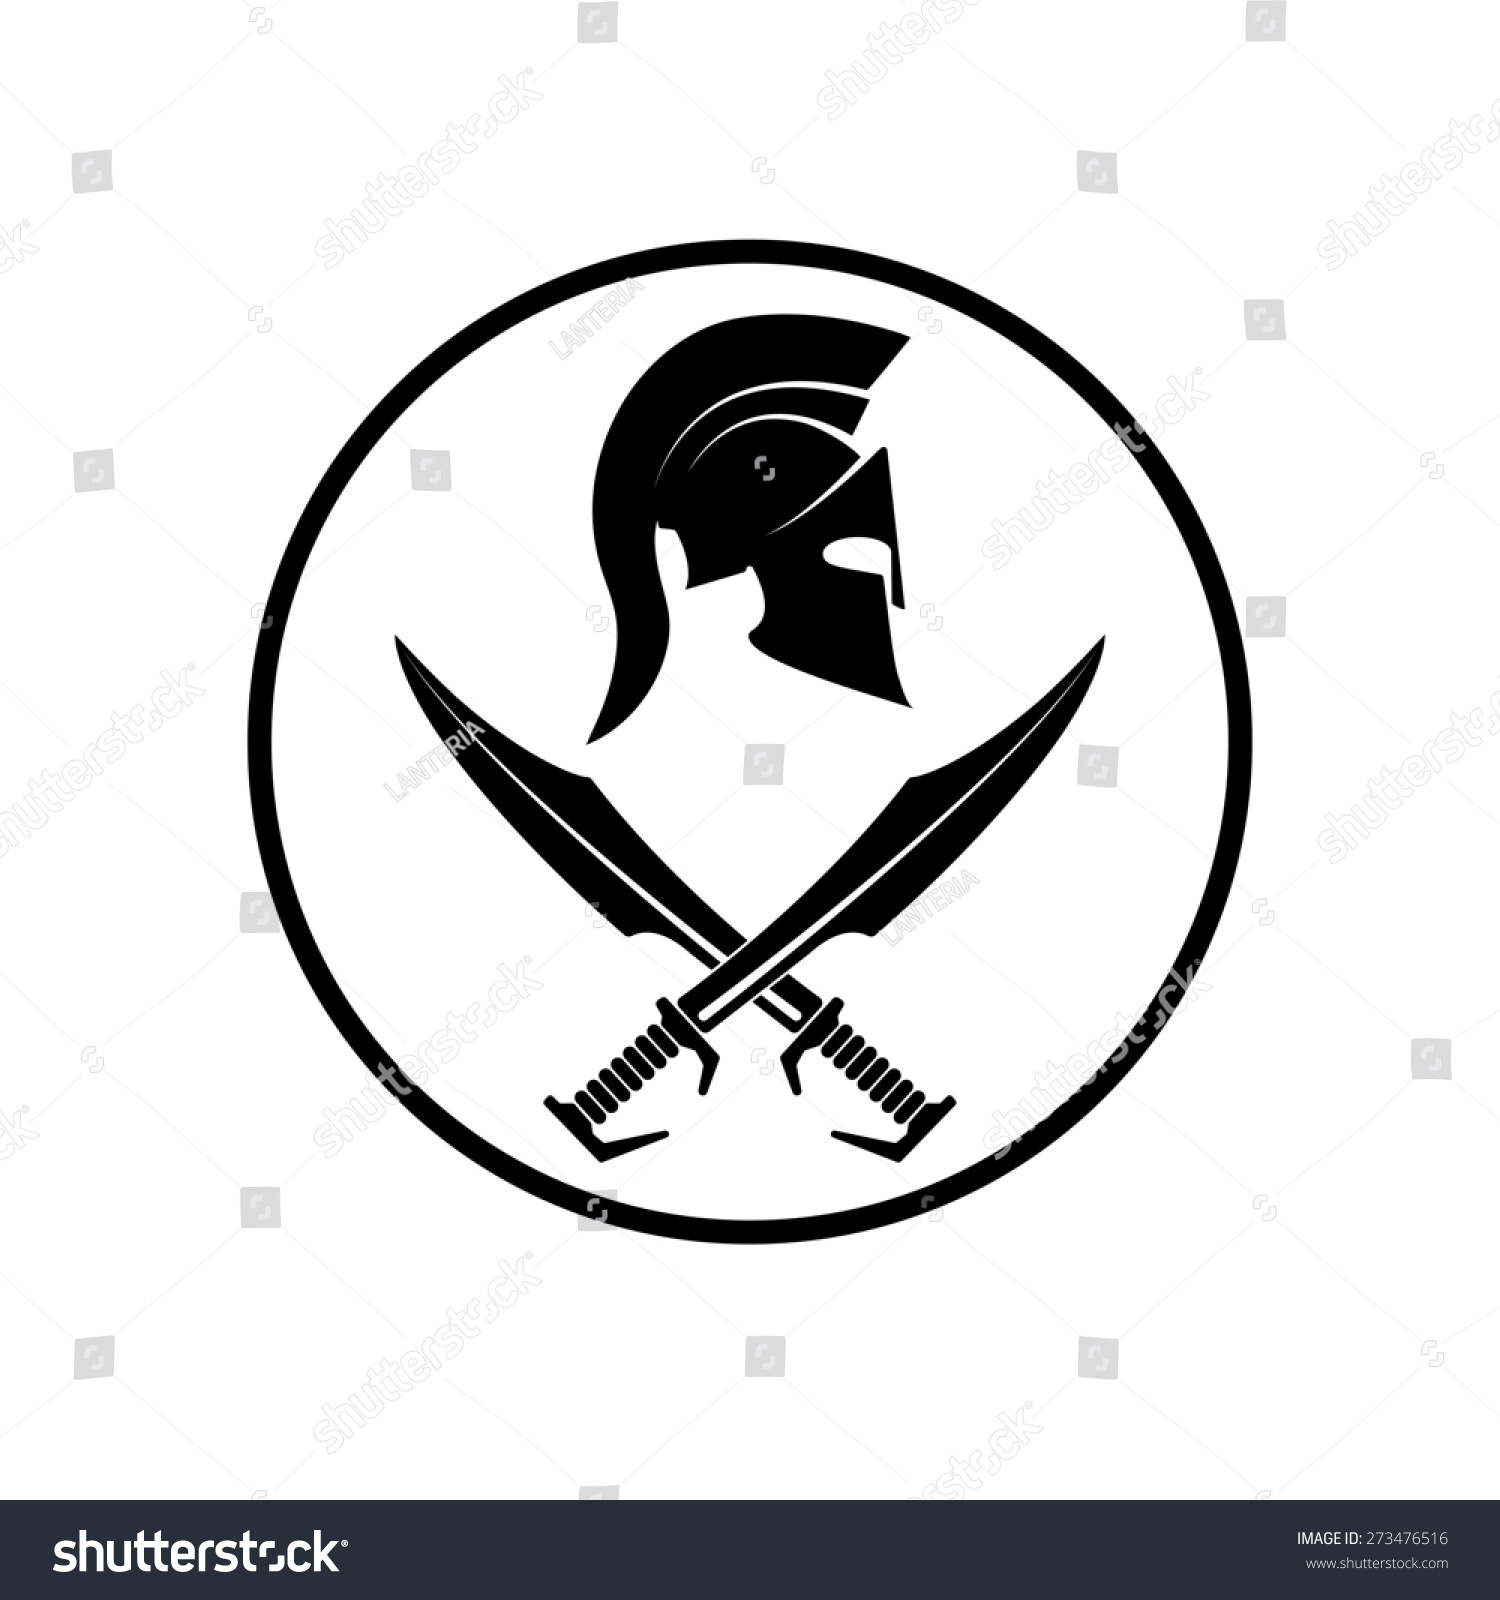 spartan helmet icon symbol of a warrior stock photo